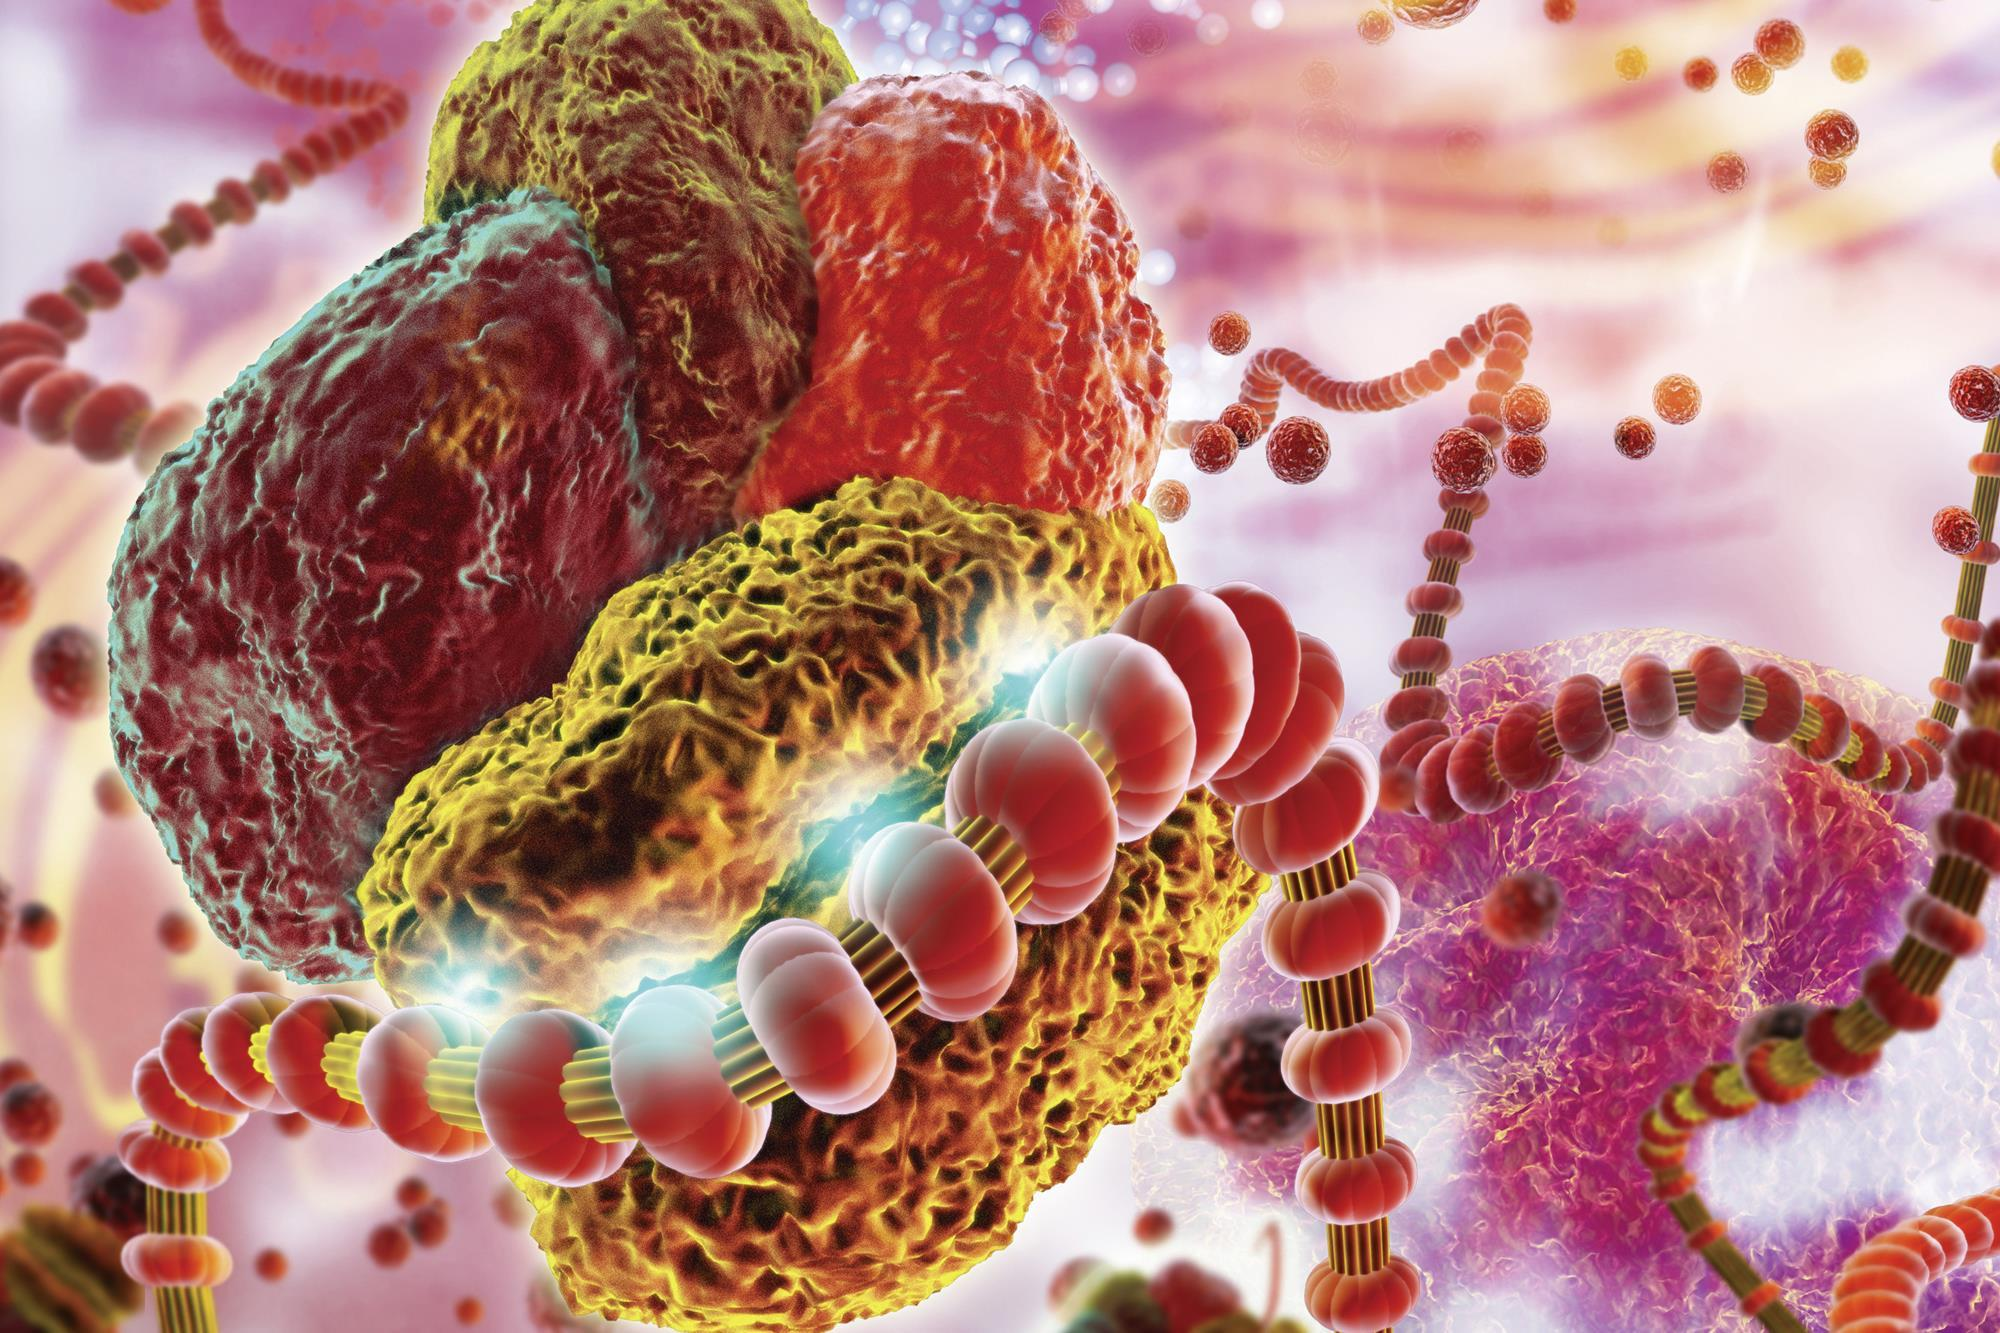 Breaking the silence of RNA interference drugs